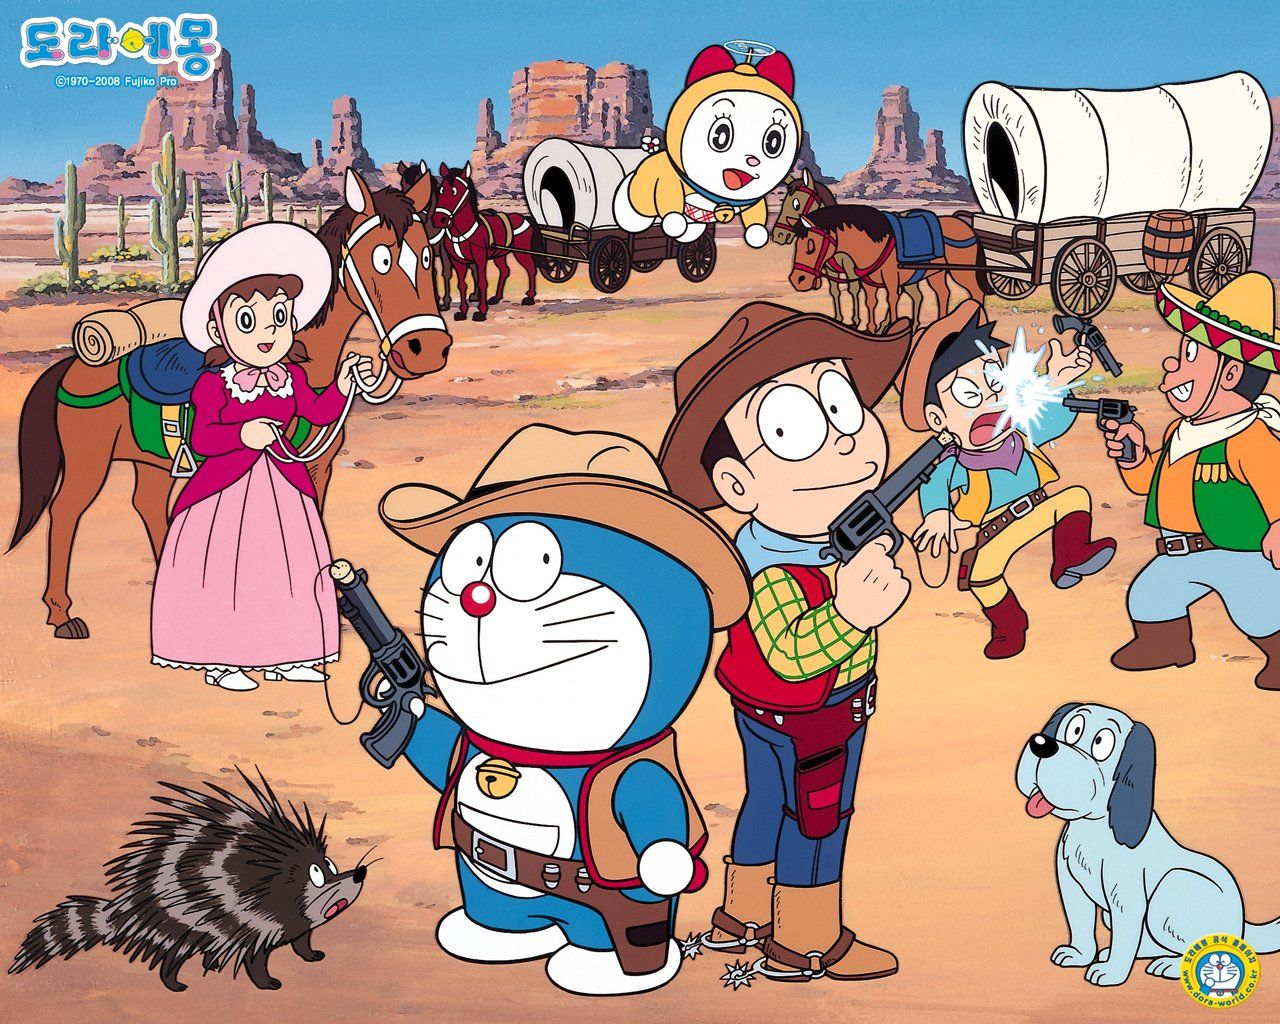 Doraemon Wallpaper and Background Image | 1280x1024 | ID:488534